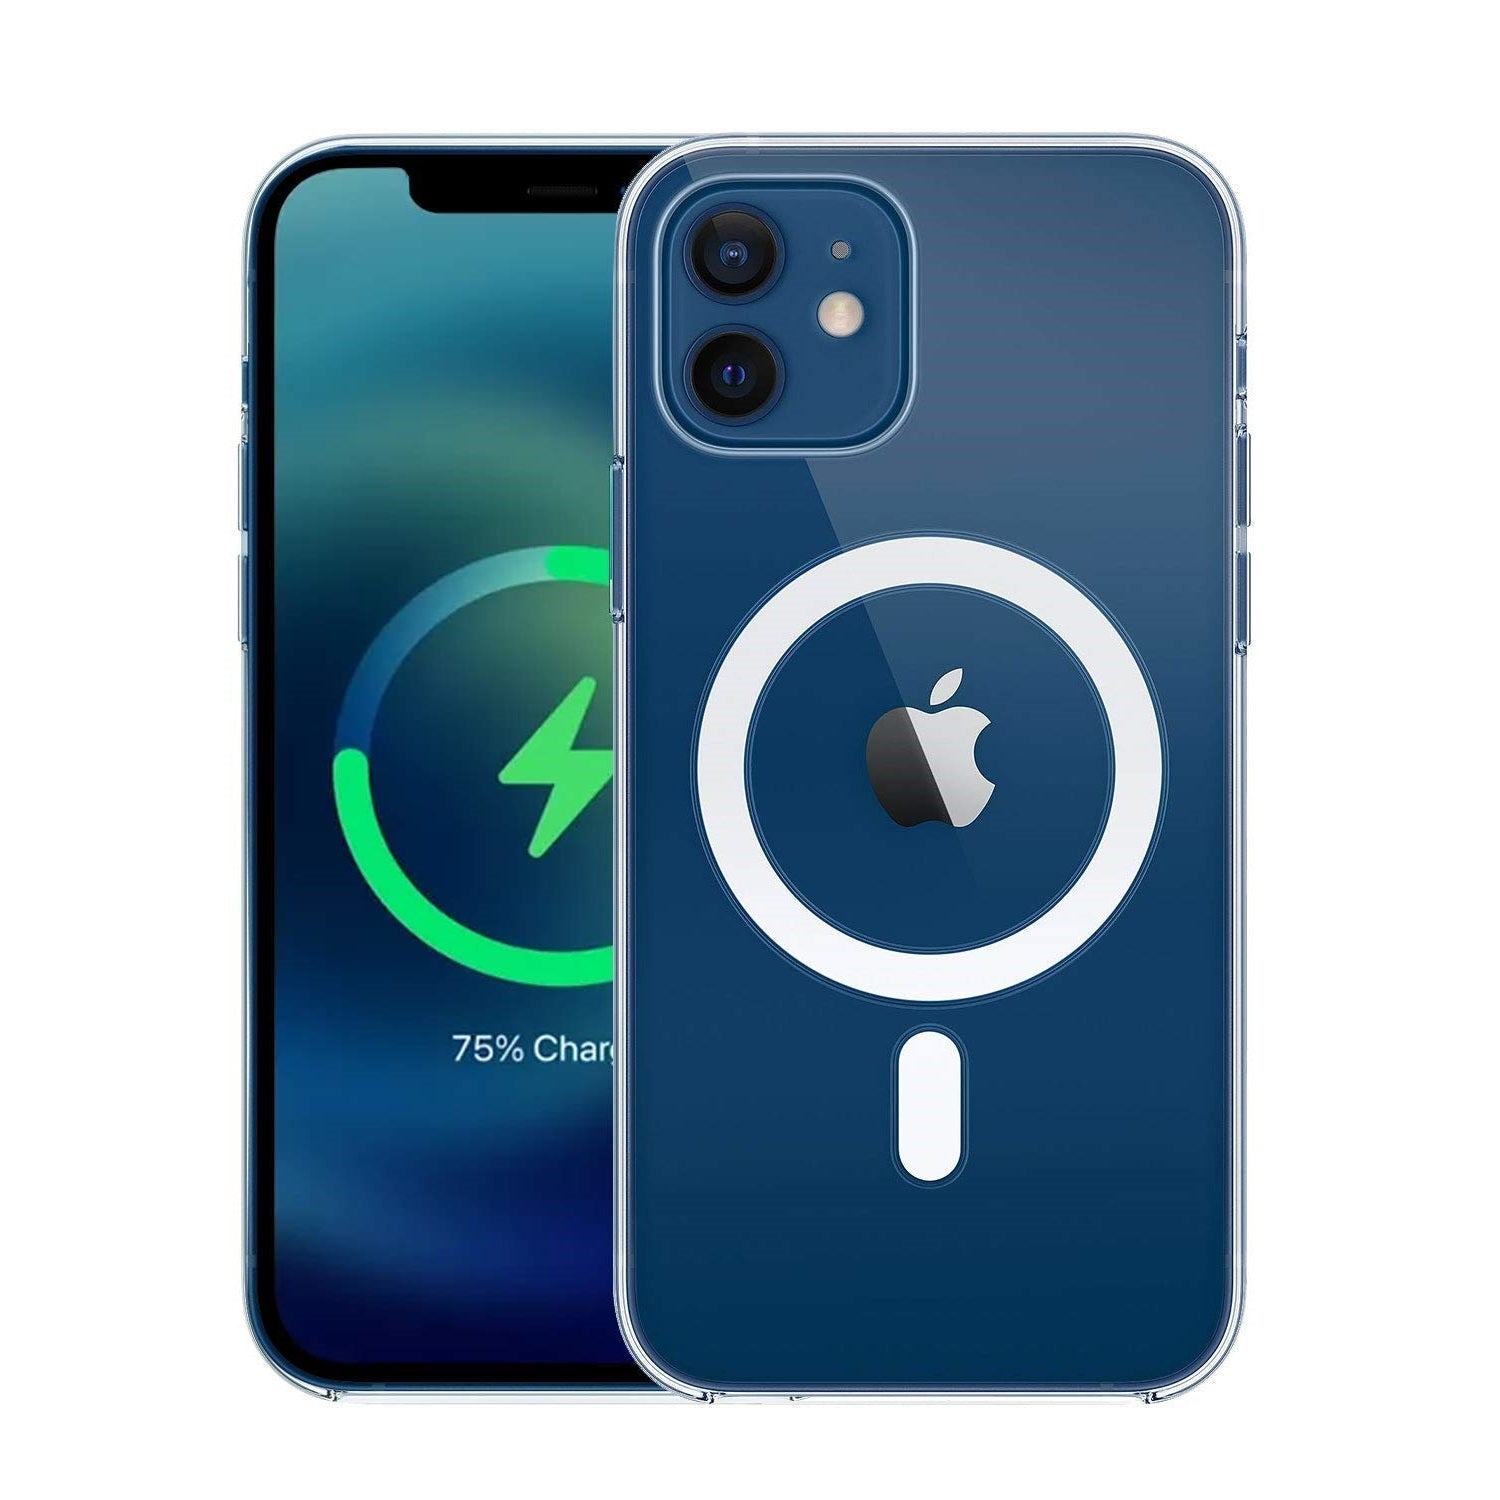 "RAEGR iPhone 12 / iPhone 12 Pro 5G MagFix Magnetic Case, Supports Mag-Safe Wireless Charging 6.1""- Air Hybrid Case"